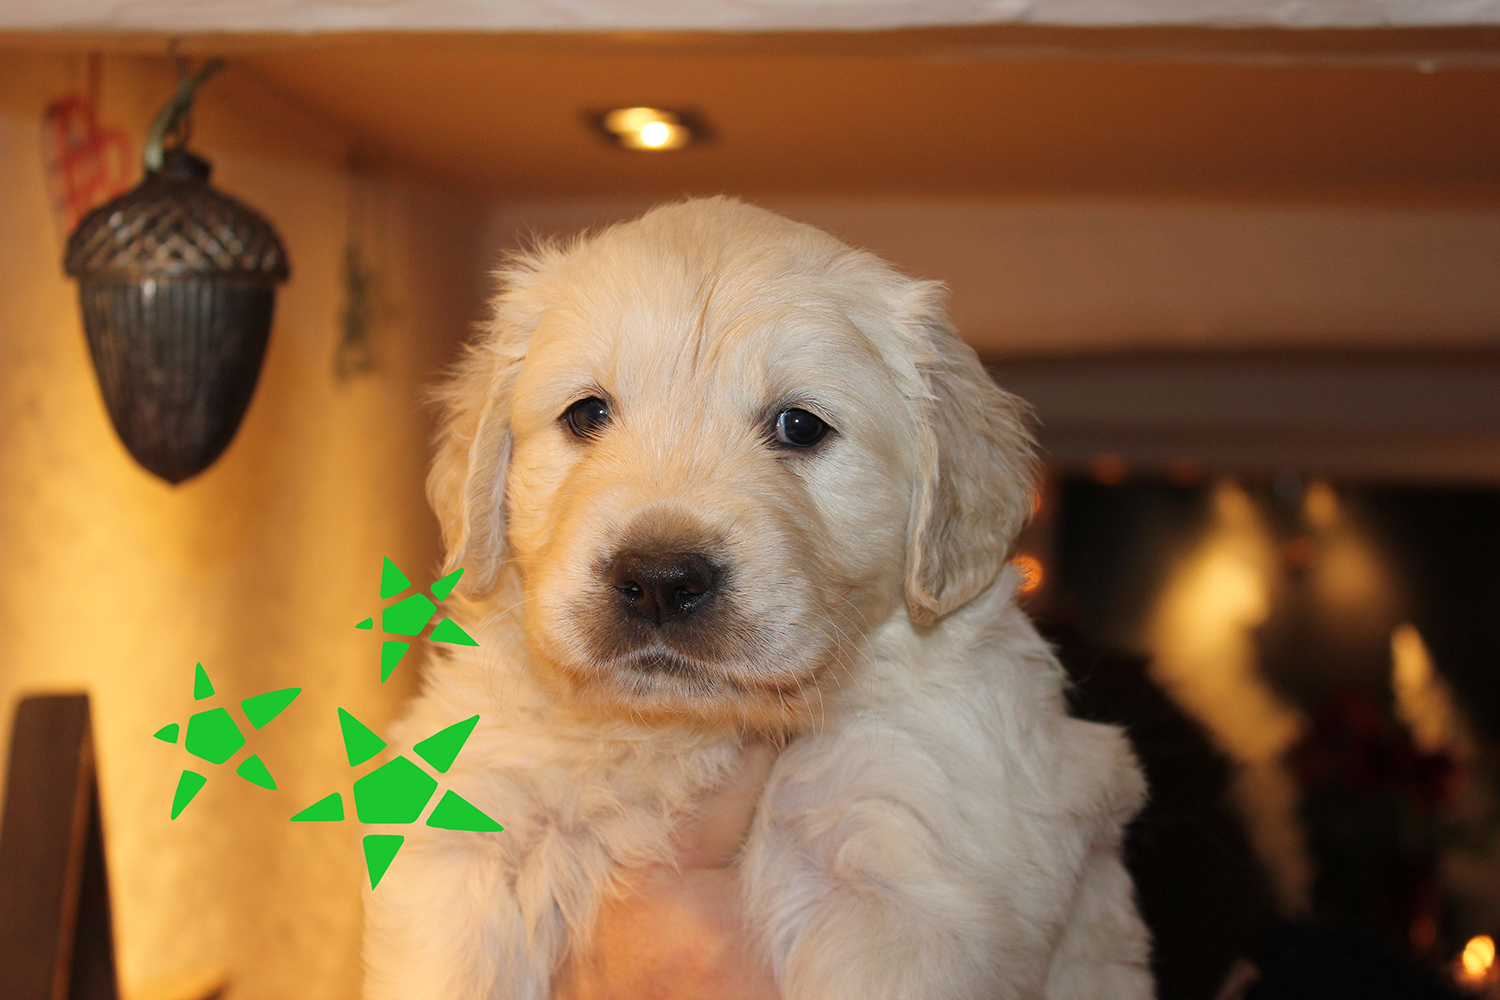 Newluck Golden Retriever | Xeen_9613